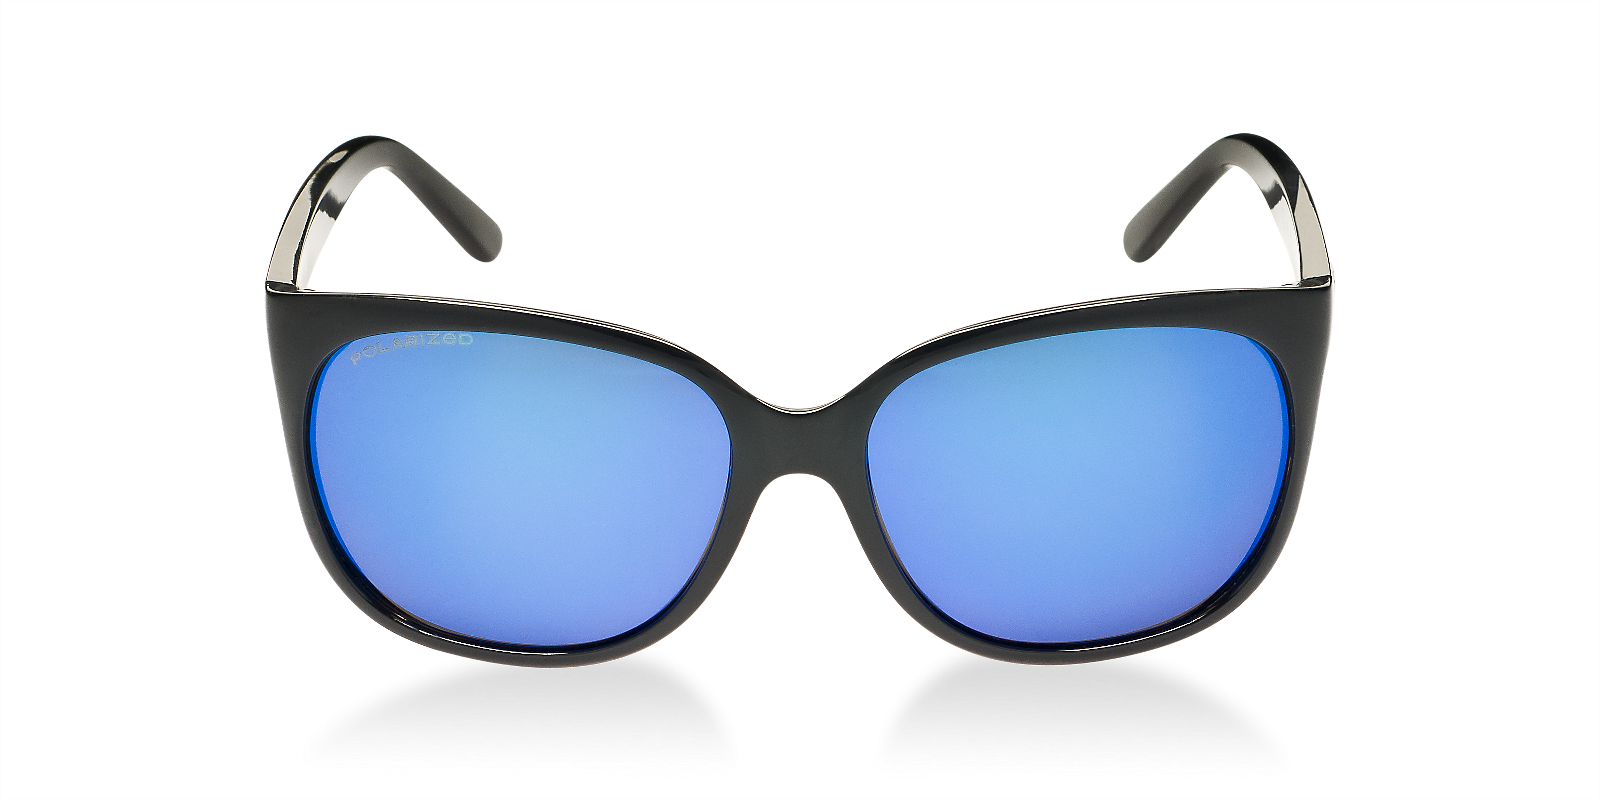 goggles sunglasses png images download sunglasses #38638